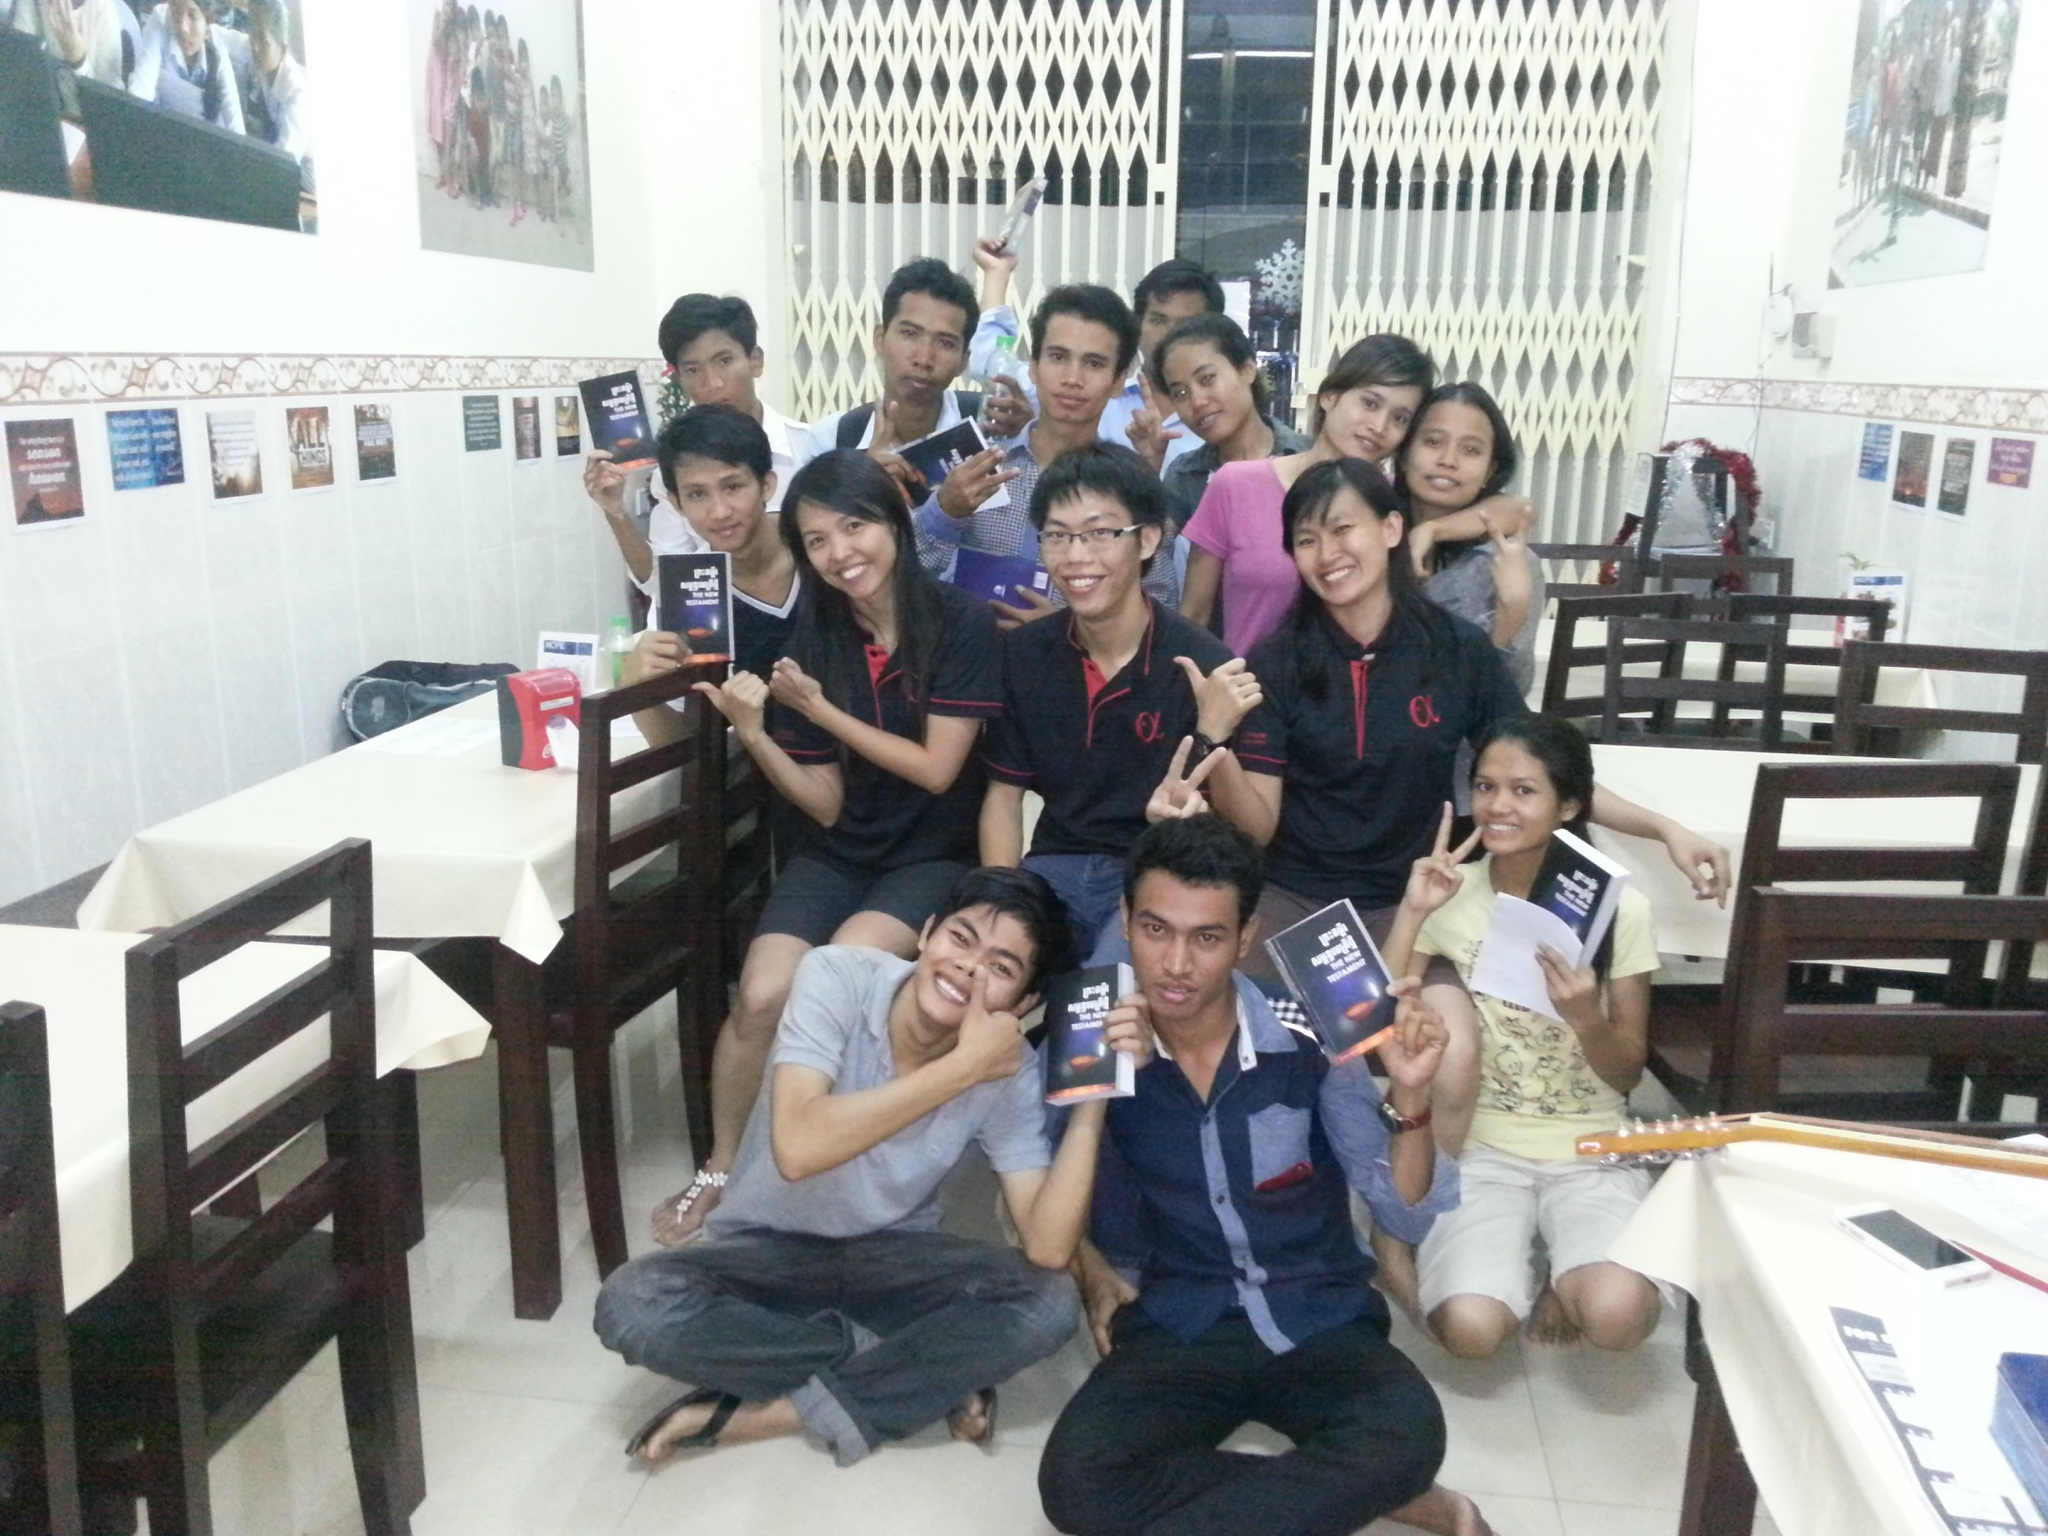 OCPP Group Photo with English & Khmer Bibles from PFS